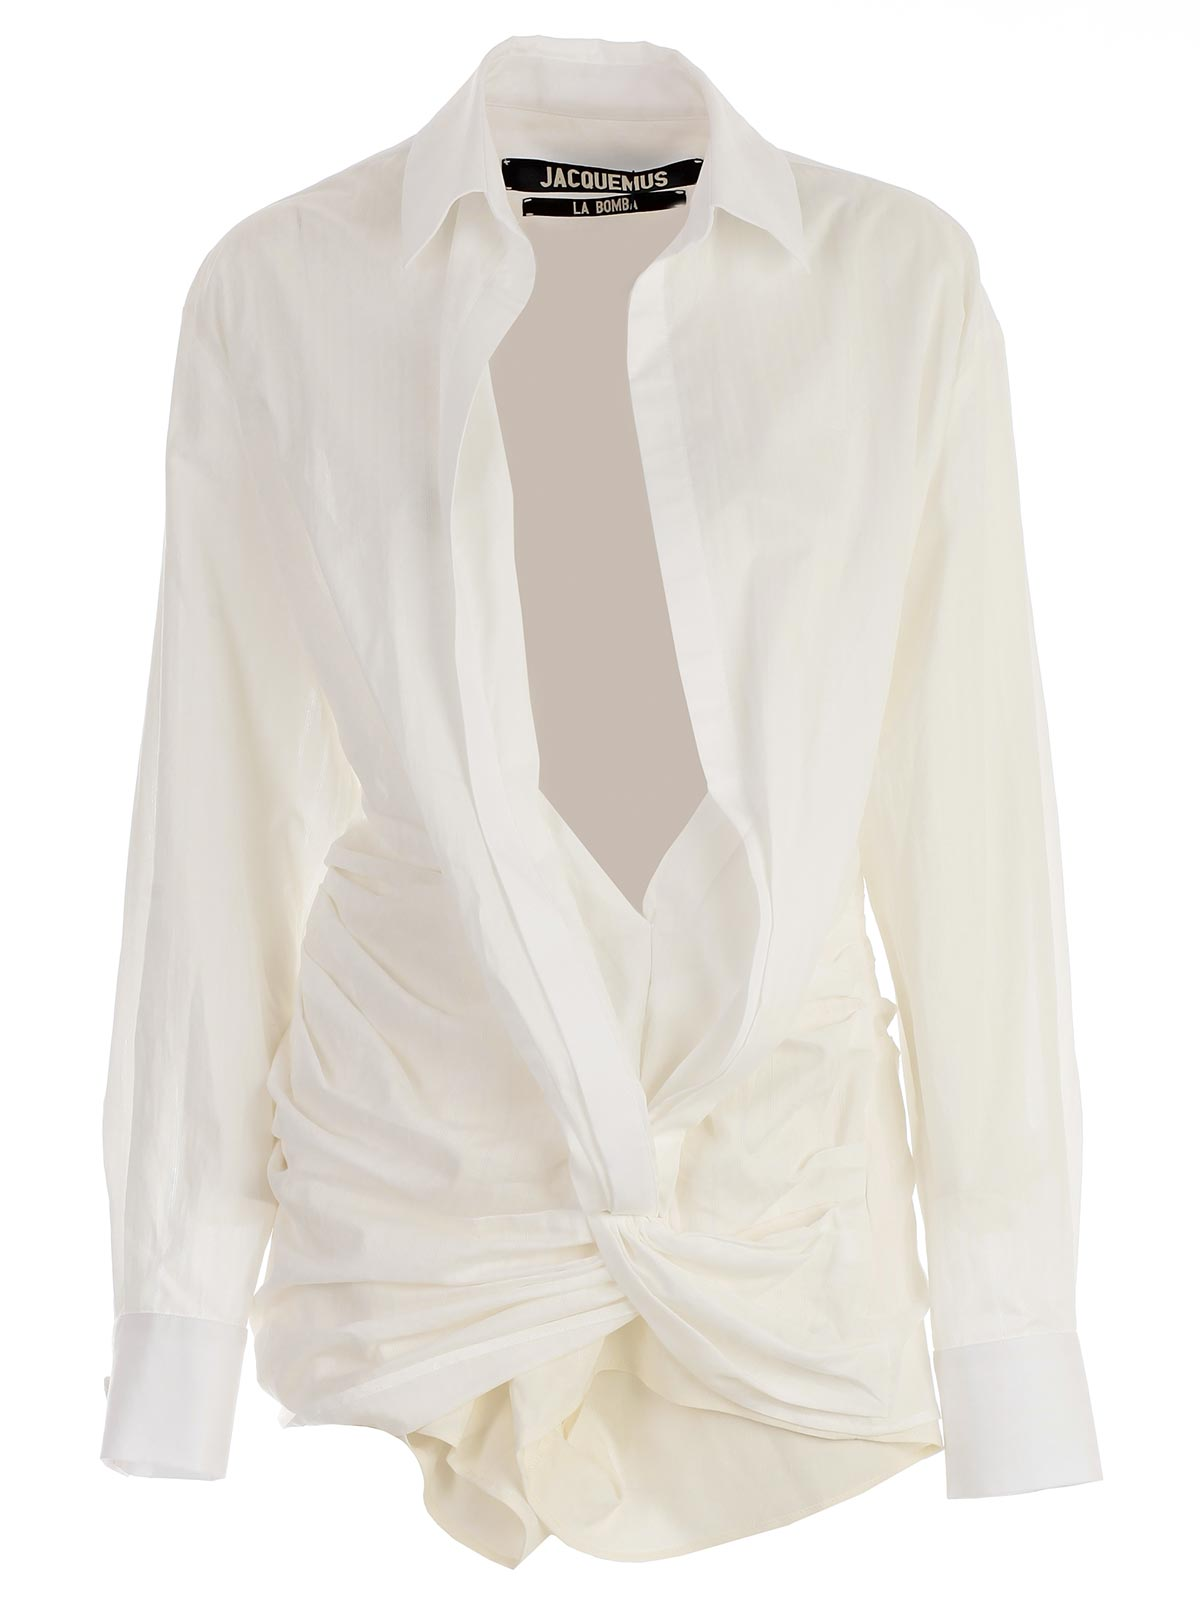 Picture of Jacquemus Shirts